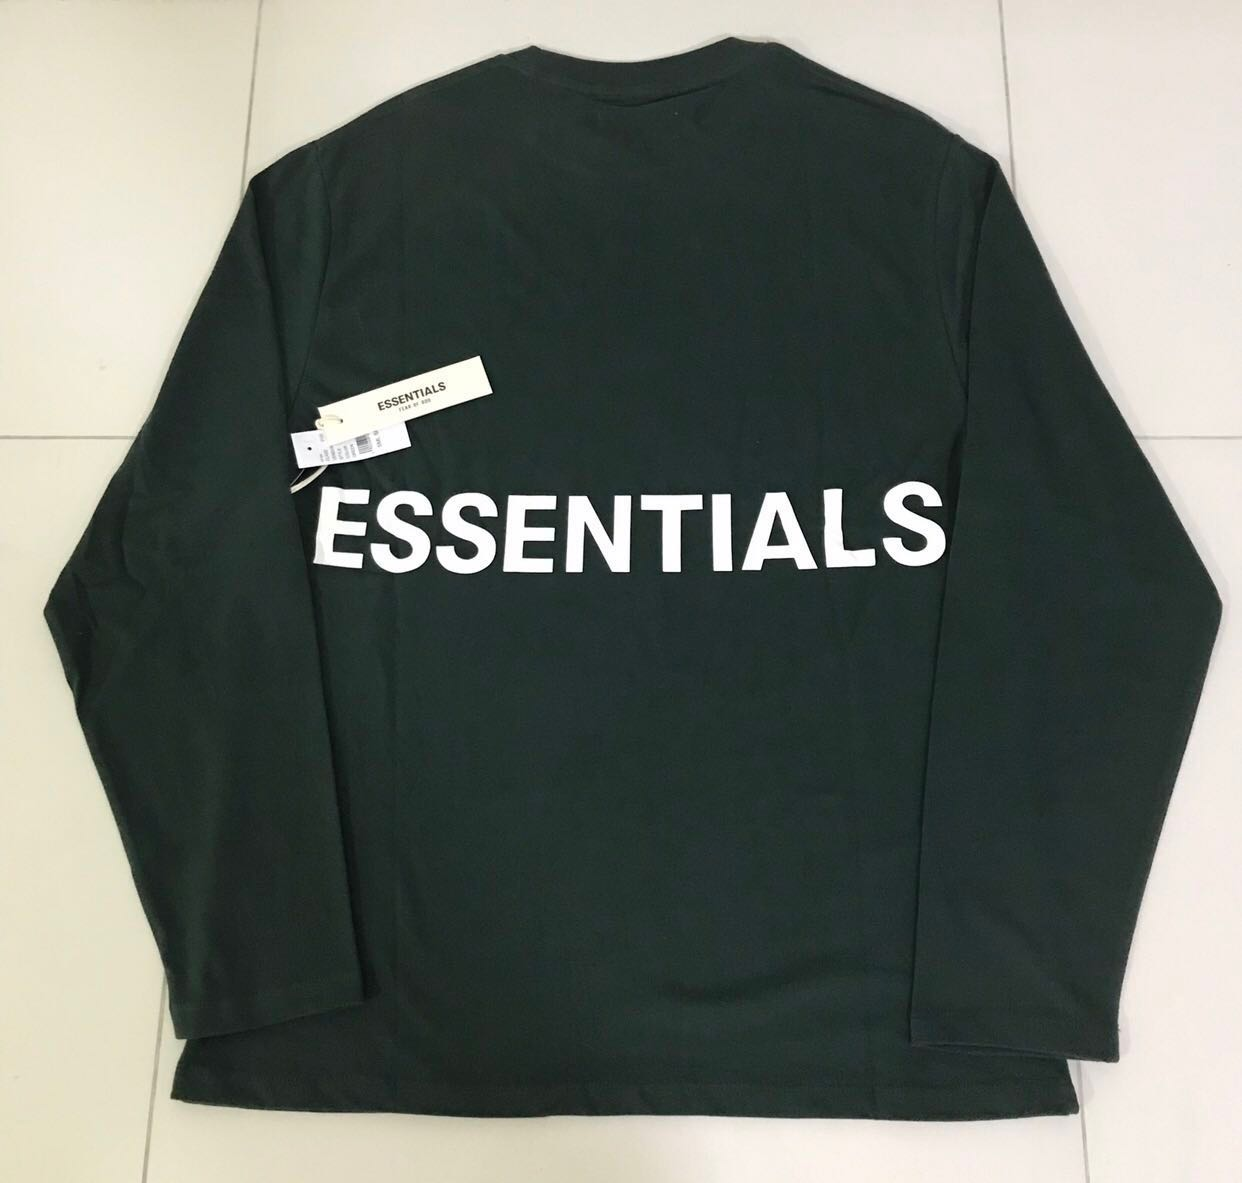 d61f6c492a Fog essentials long sleeve tee, Men's Fashion, Clothes, Tops on ...